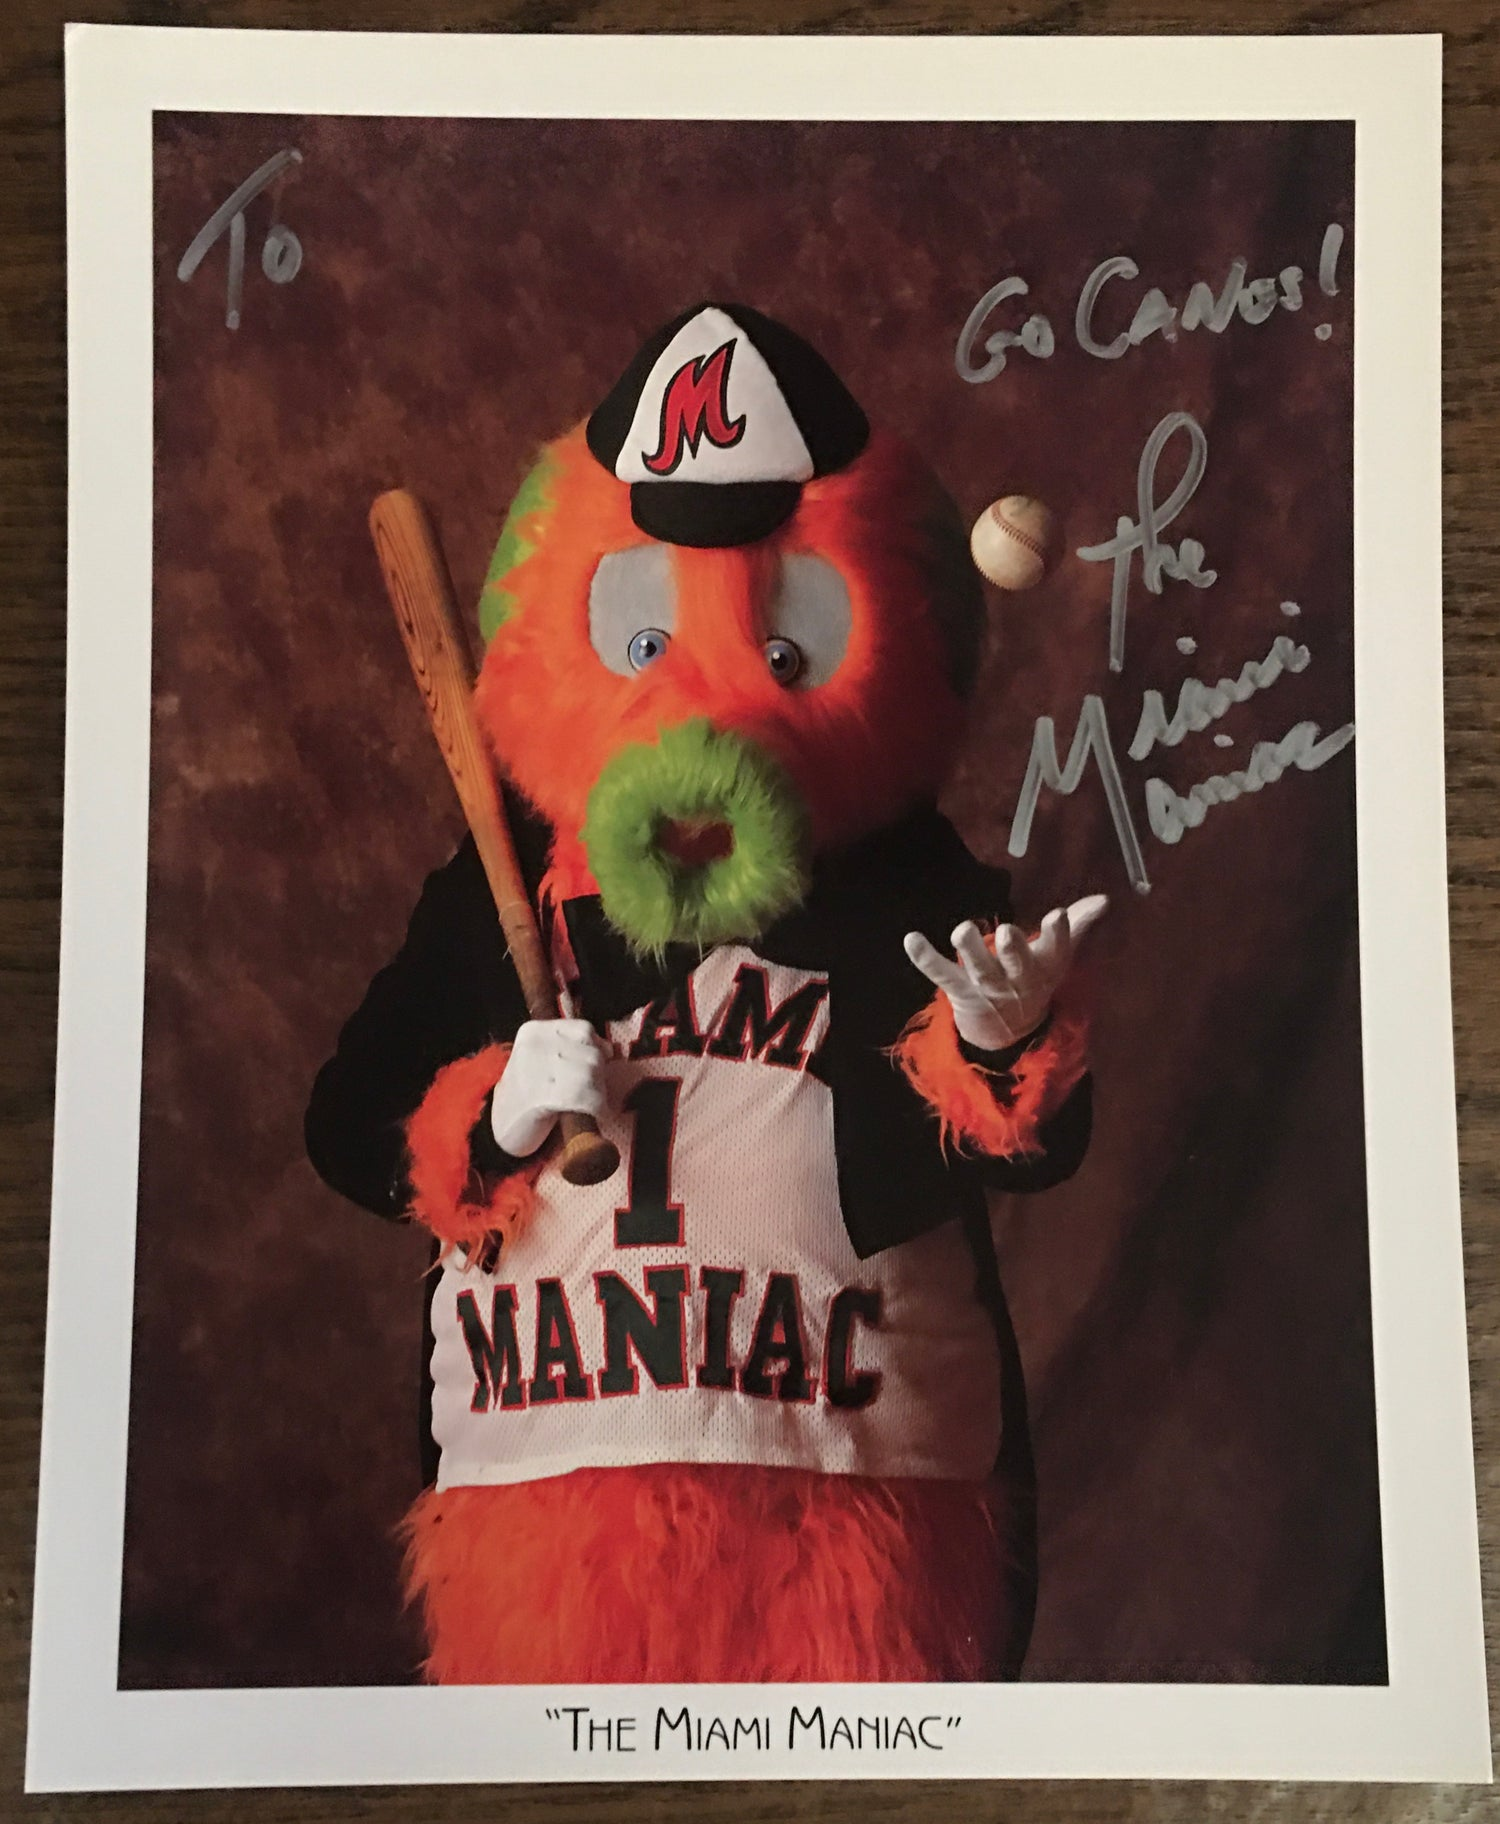 Image of Personalized MIAMI MANIAC signed 8 by 10 photo